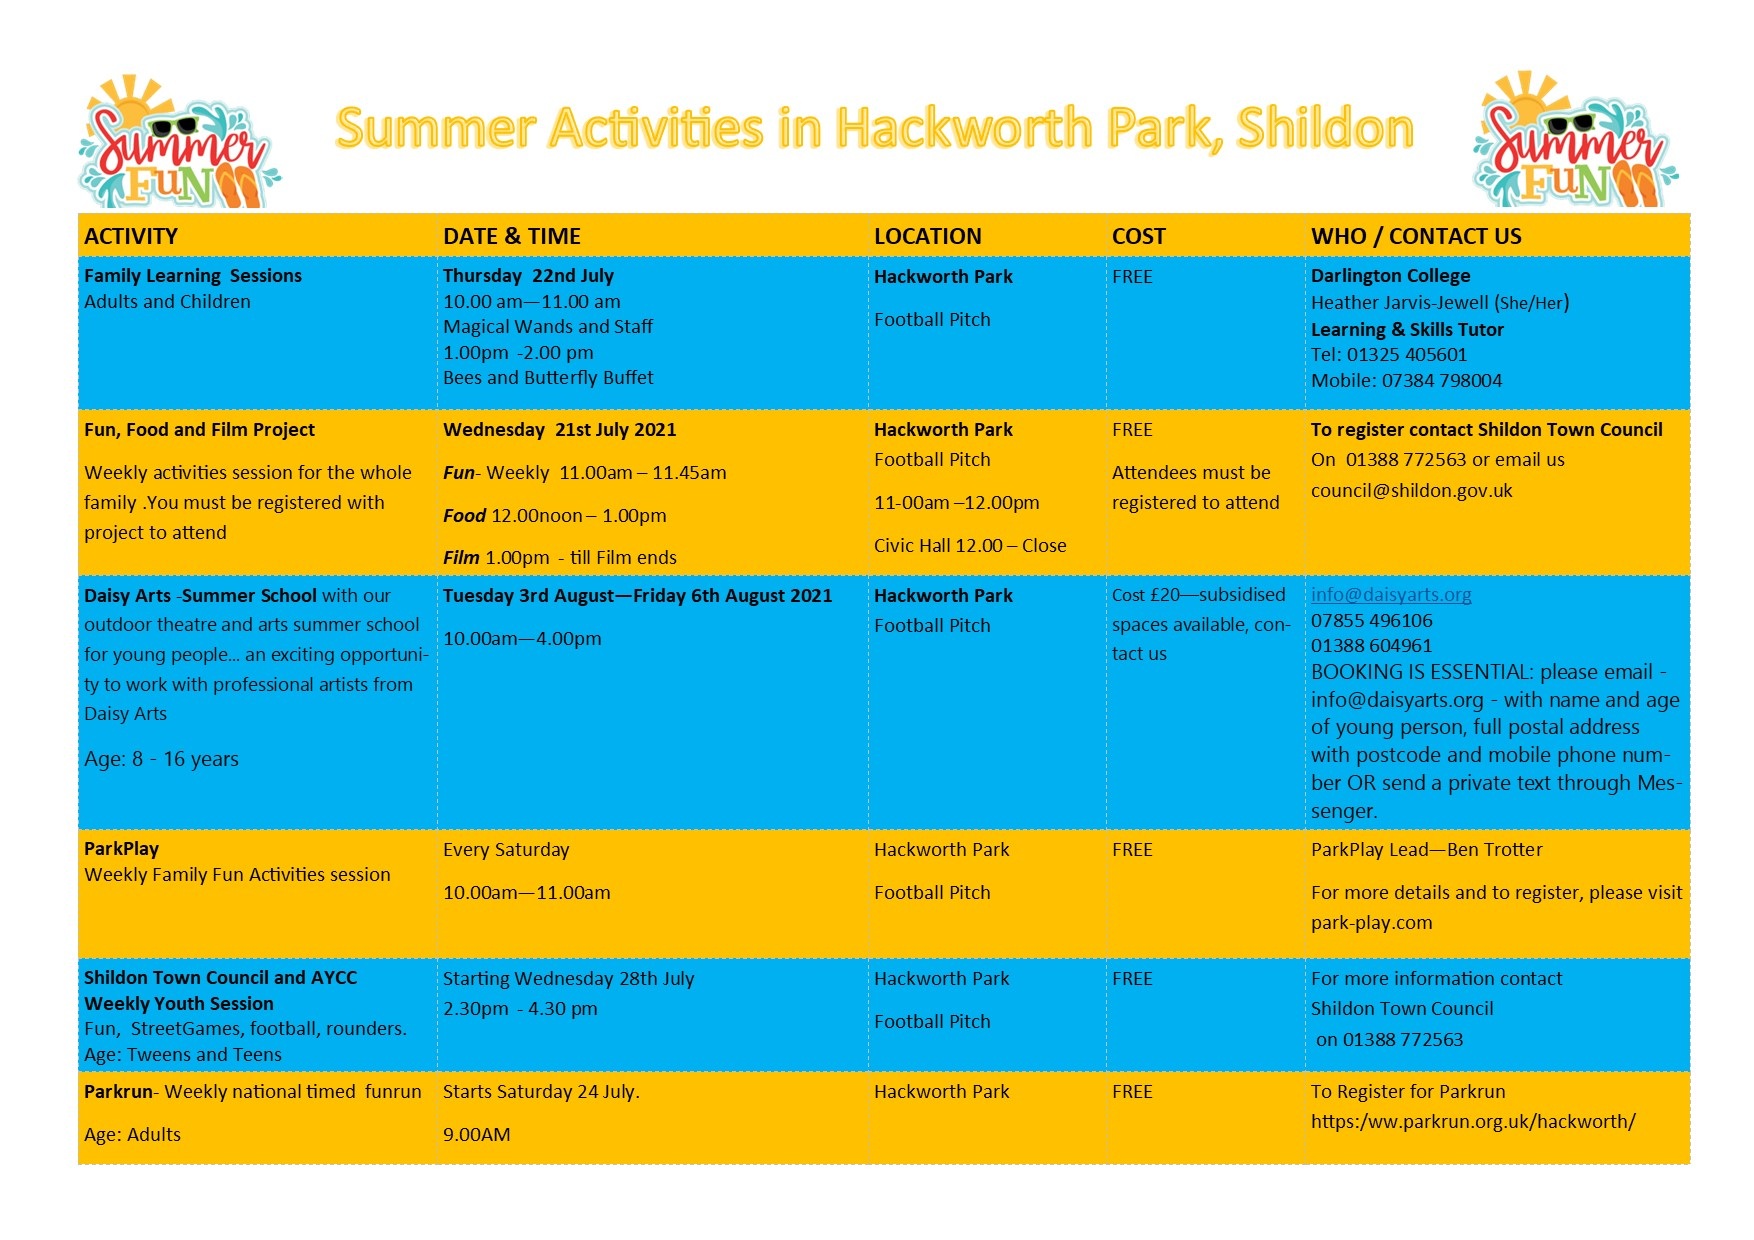 Poster for Summer Activities in Hackworth Park, Shildon